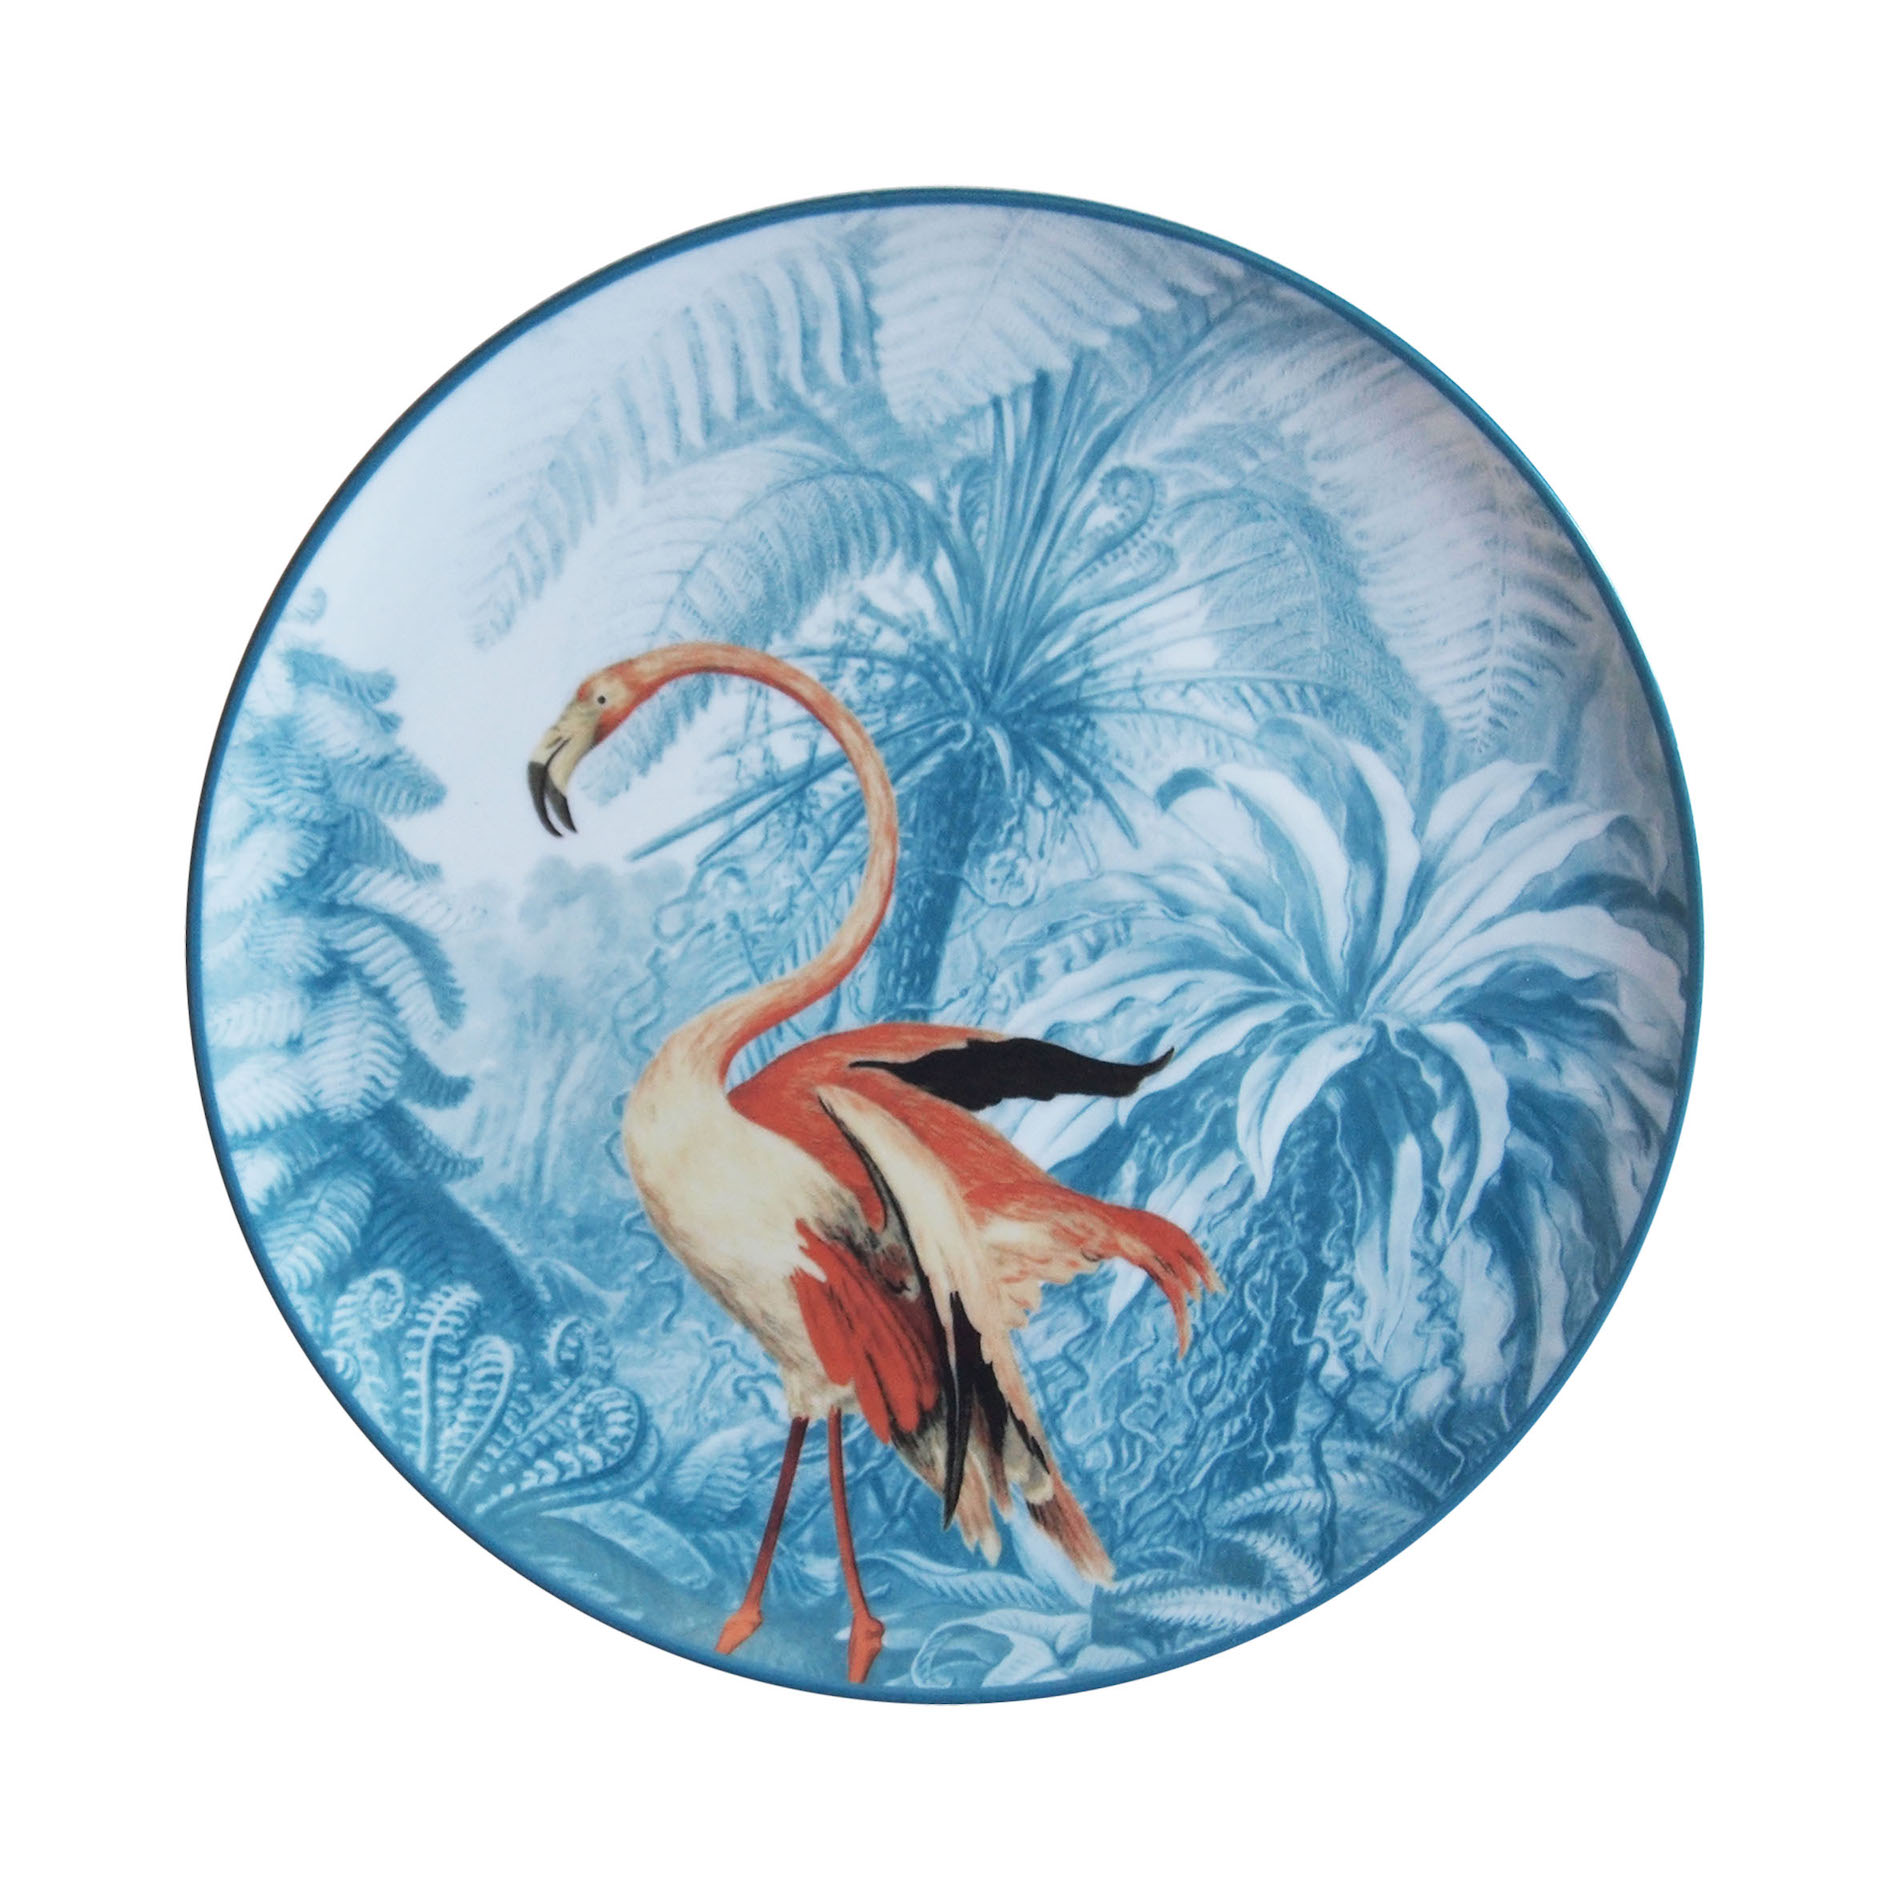 Teller, Menagerie Flamingo - Bild 1